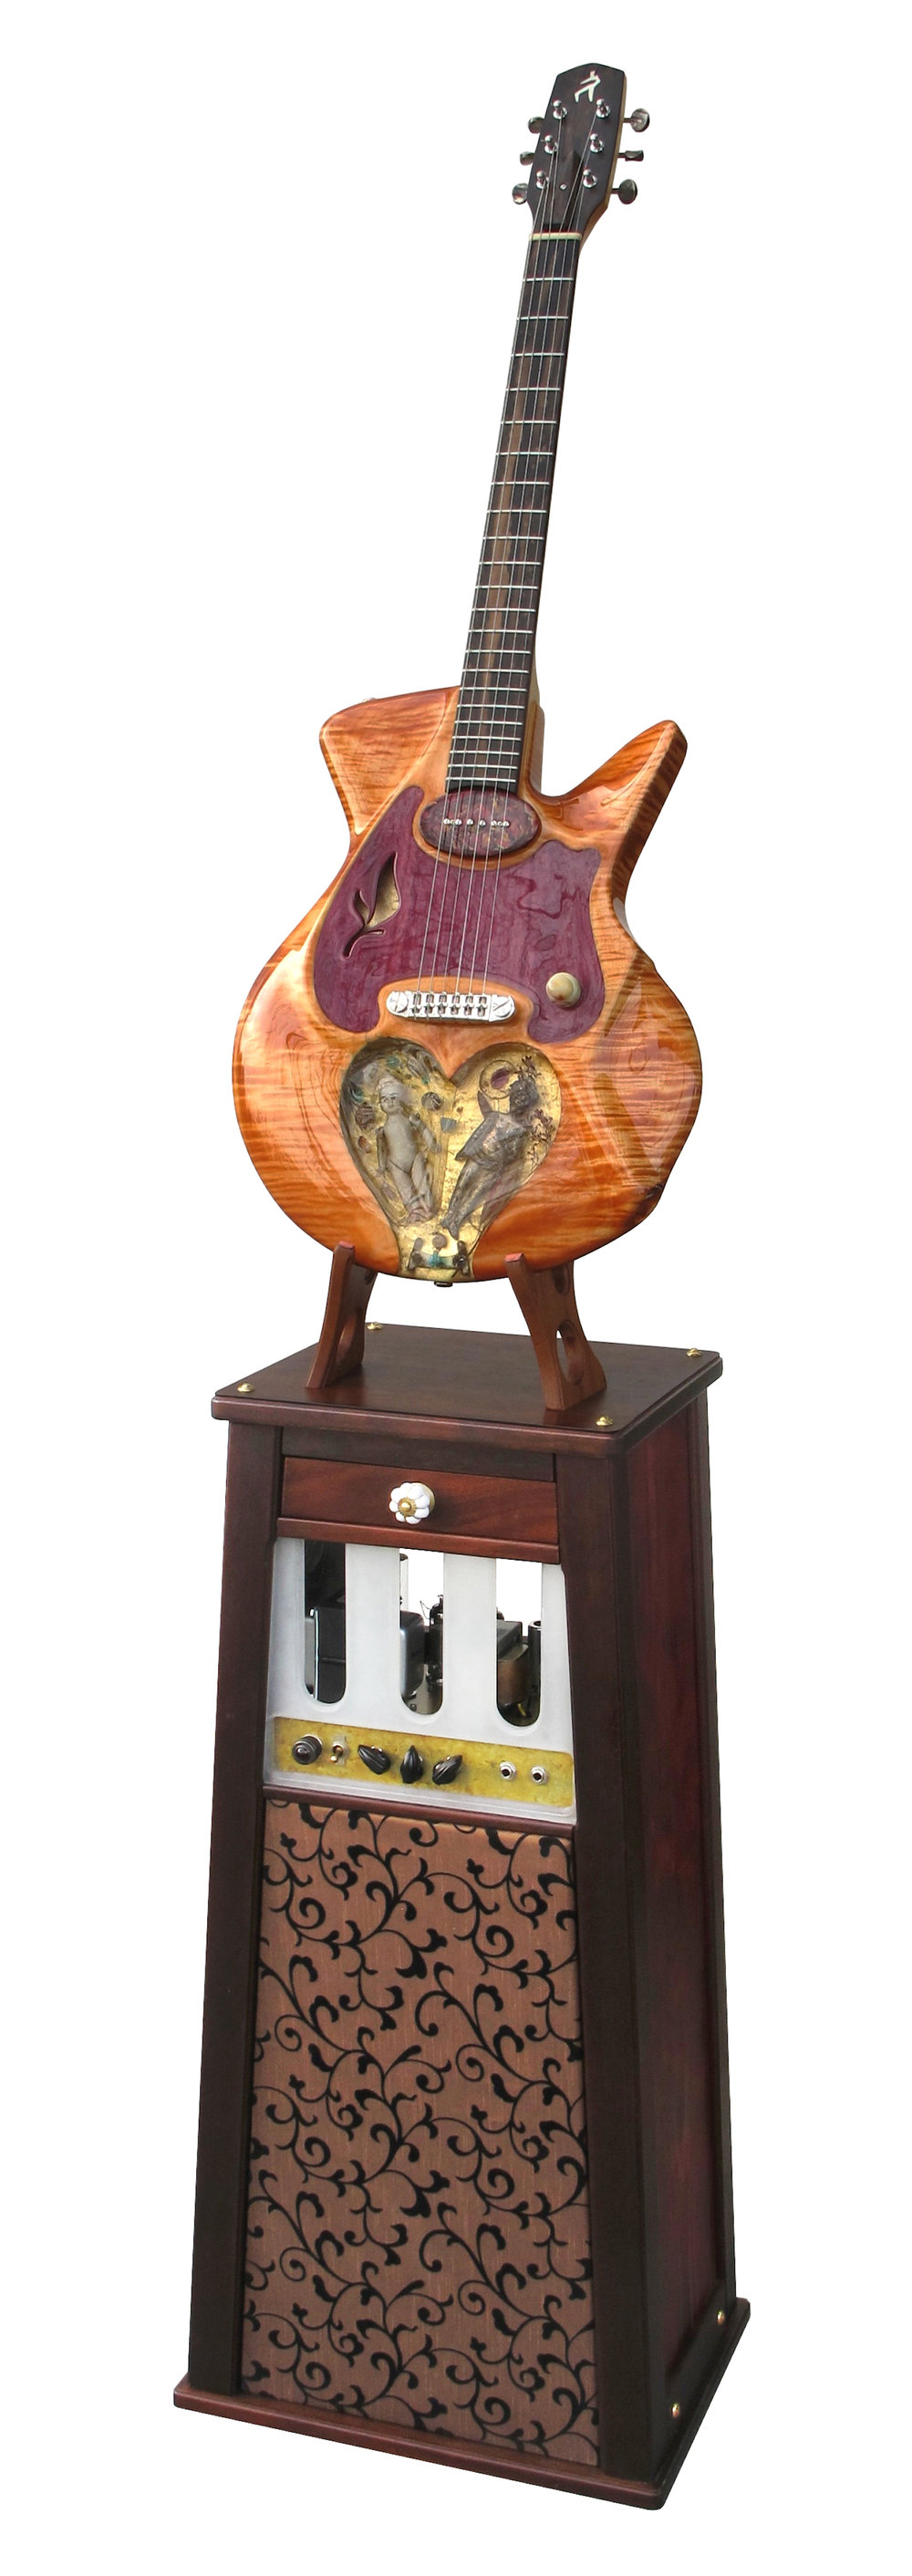 Mixed media; guitar & stand with custom amp